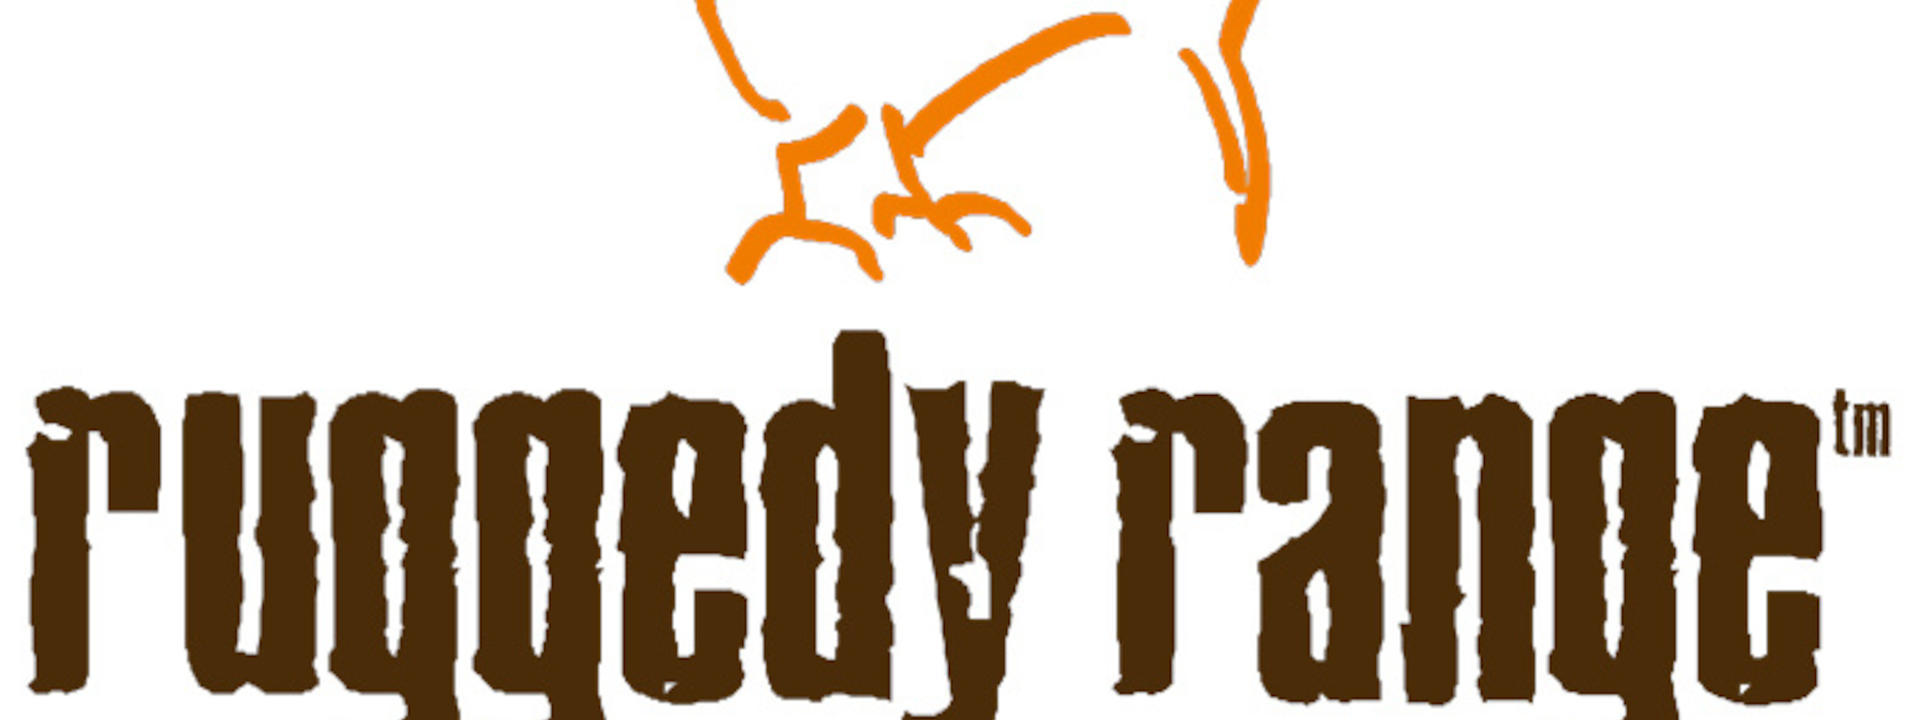 Logo: Ruggedy Range (TM) Wilderness Experience